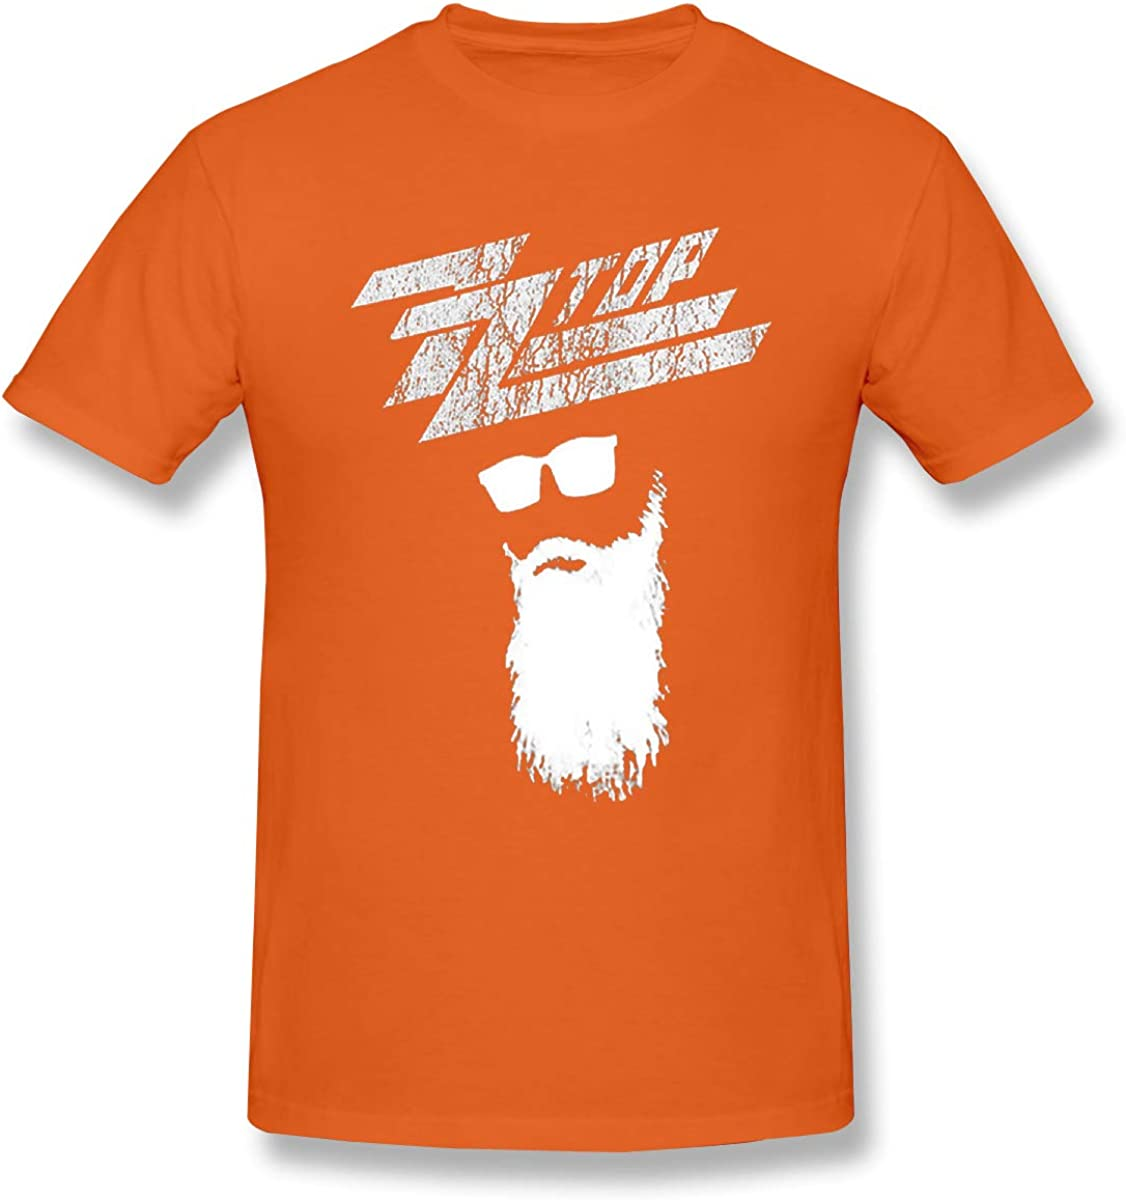 ZZ Top Rock Band Camiseta para Hombre con Logo Texas - Negro - X-Large: Amazon.es: Ropa y accesorios